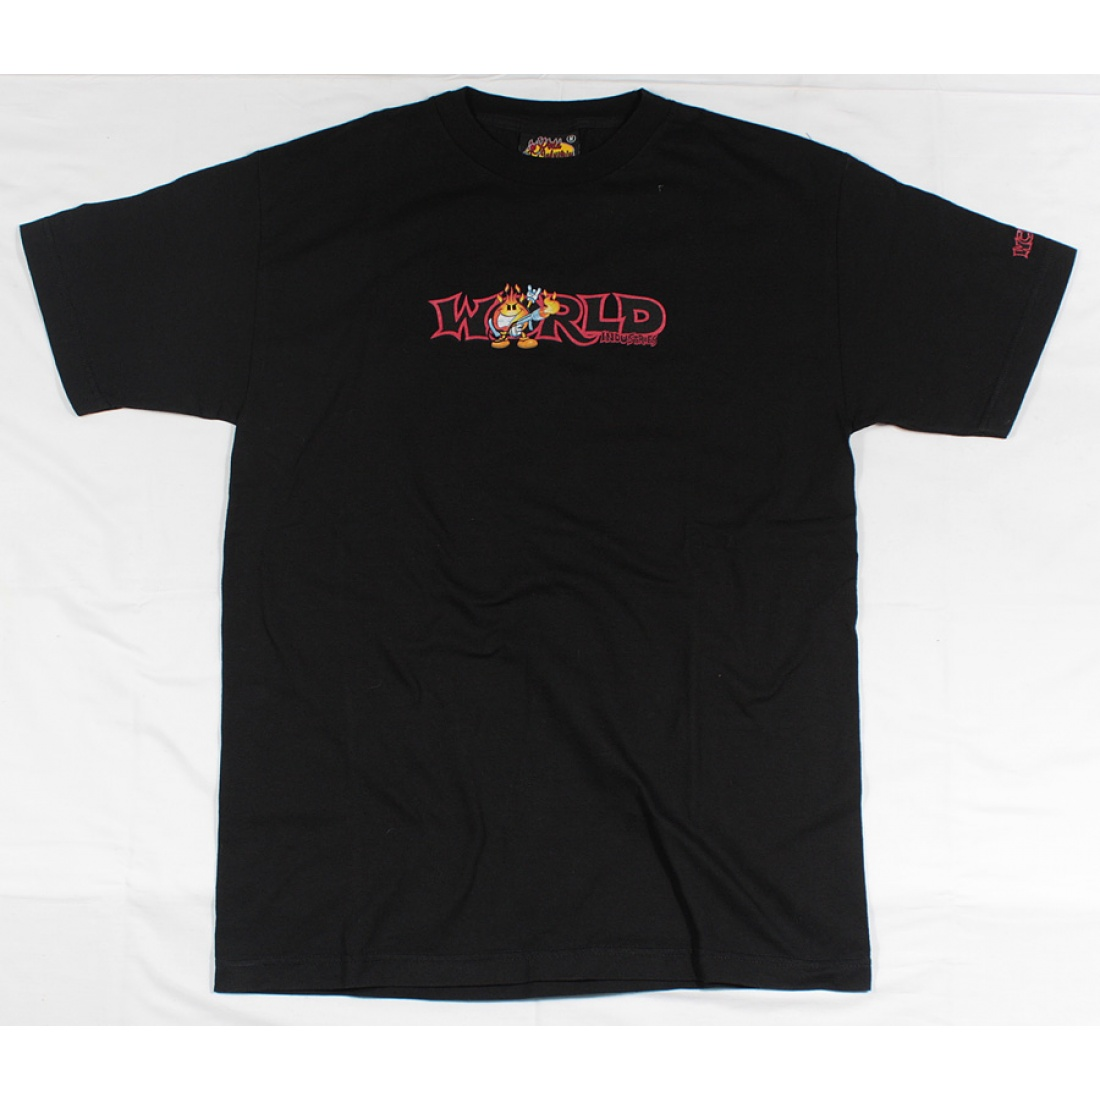 WLD-Fireworld Black T-shirt Small